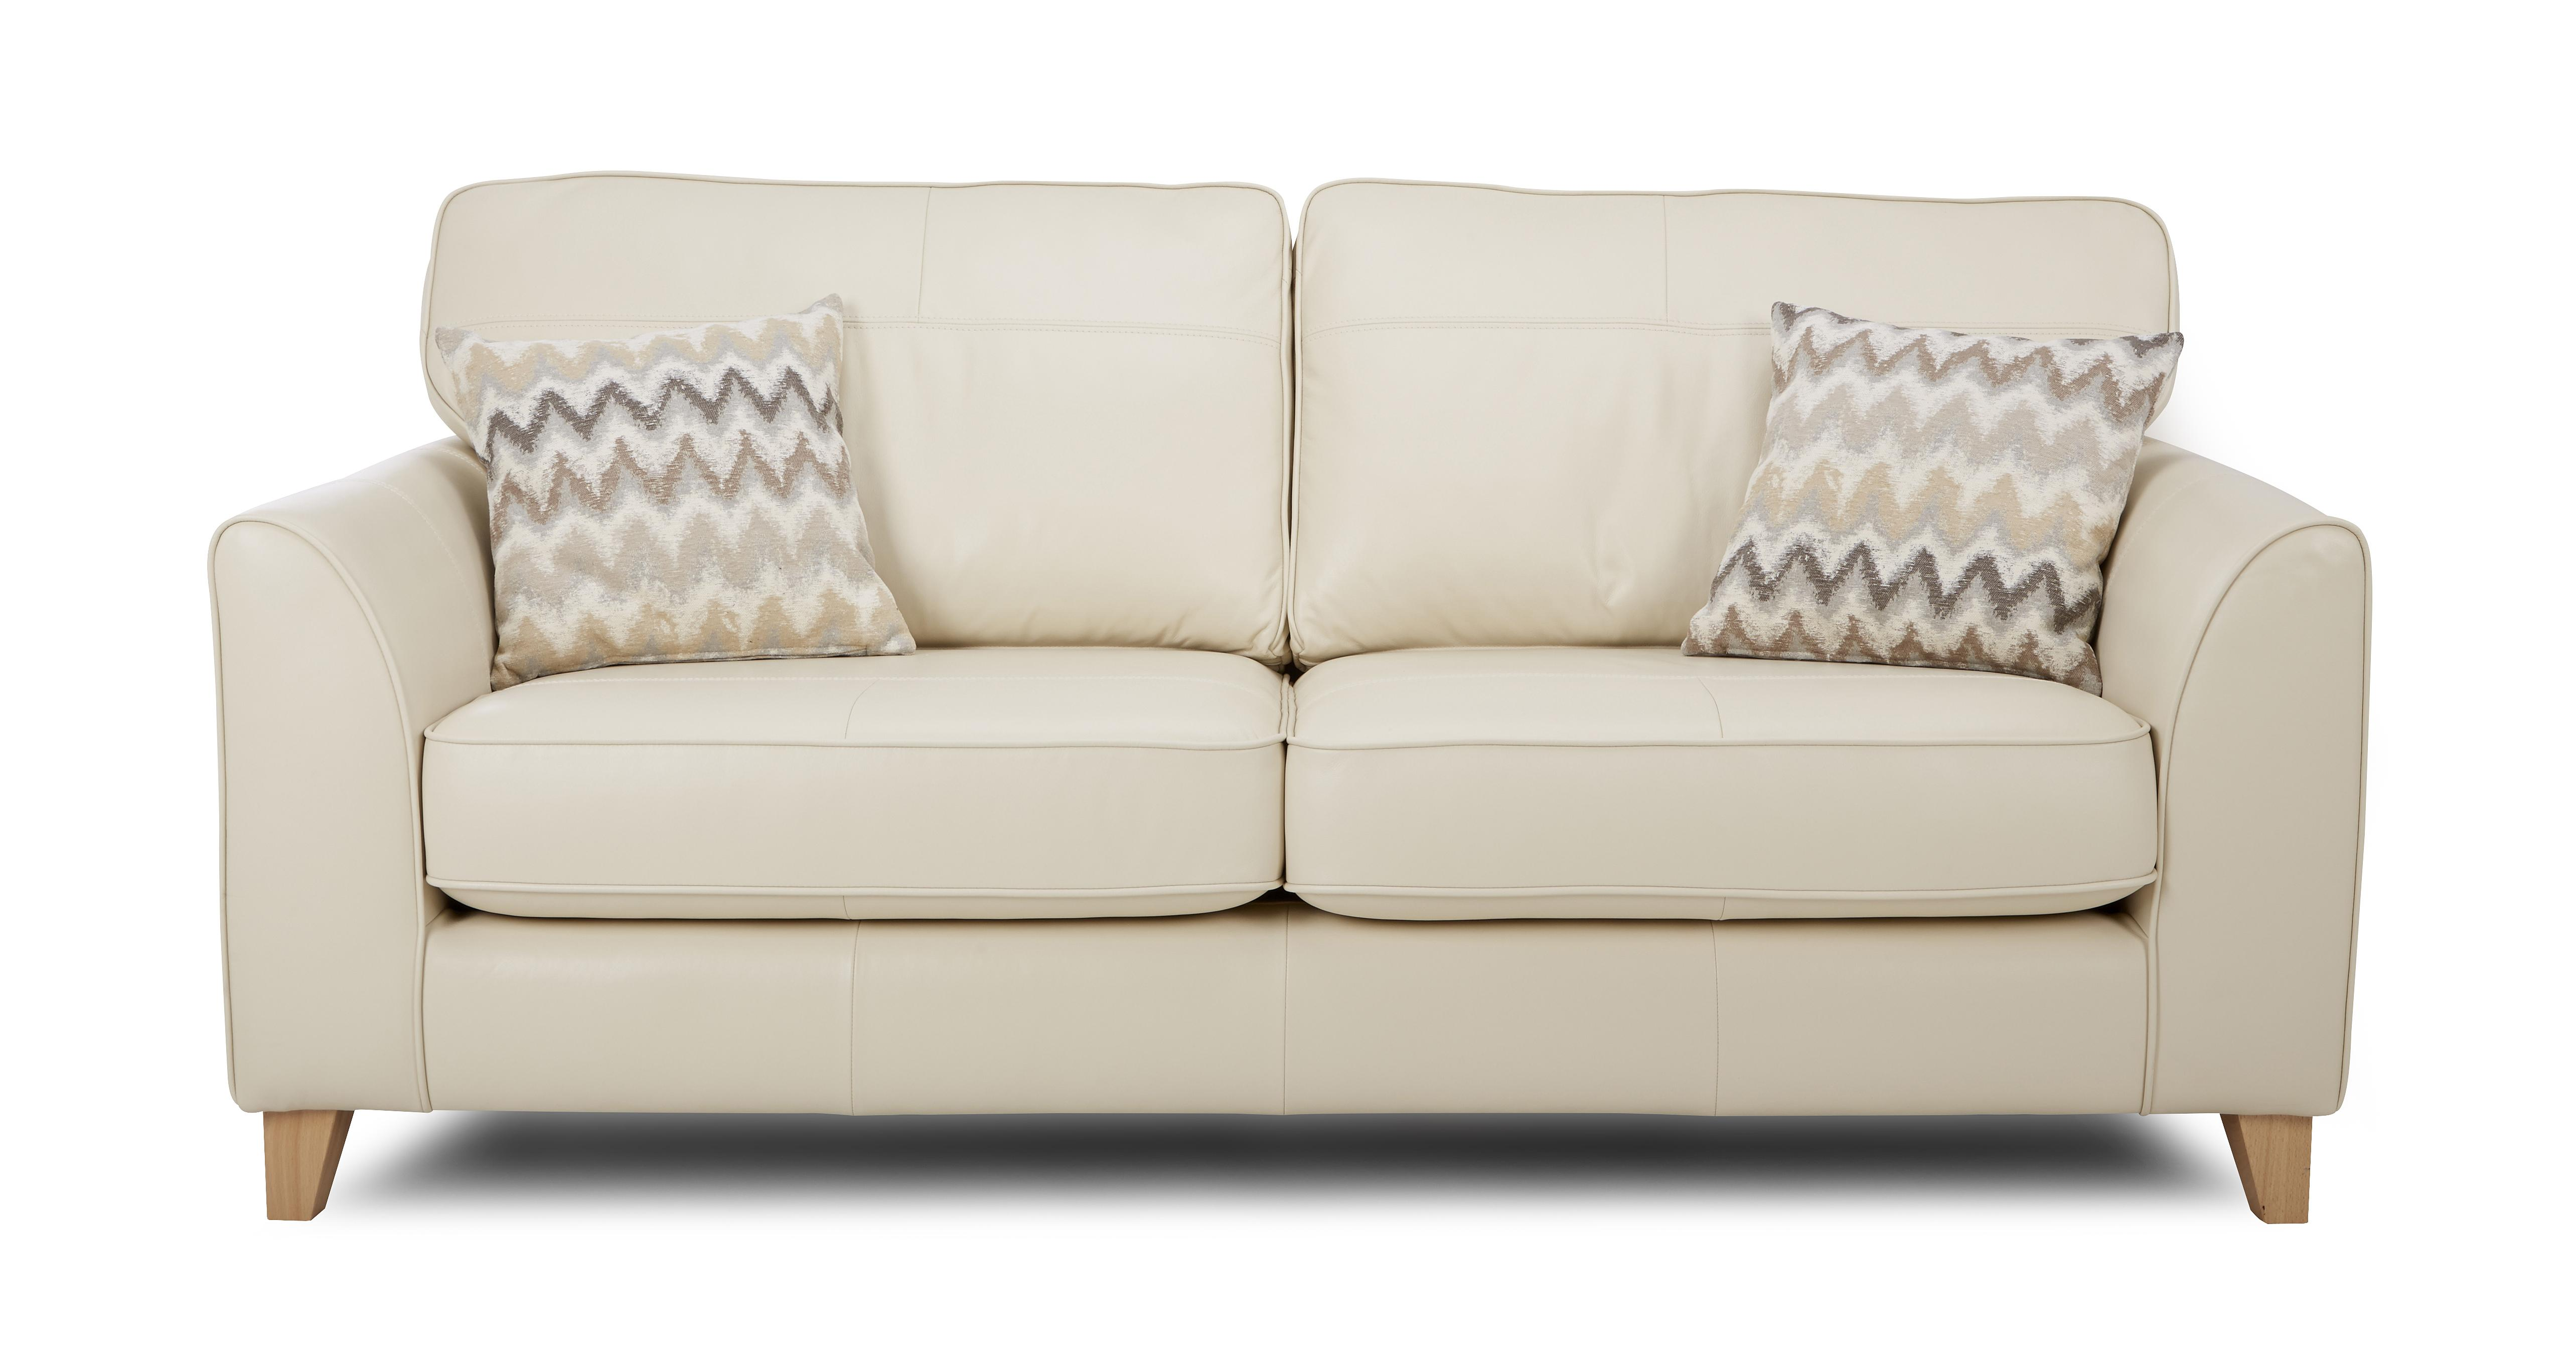 lodge sofa dfs leather chesterfield comfortable deep couches new teal sectional 90 sofas and